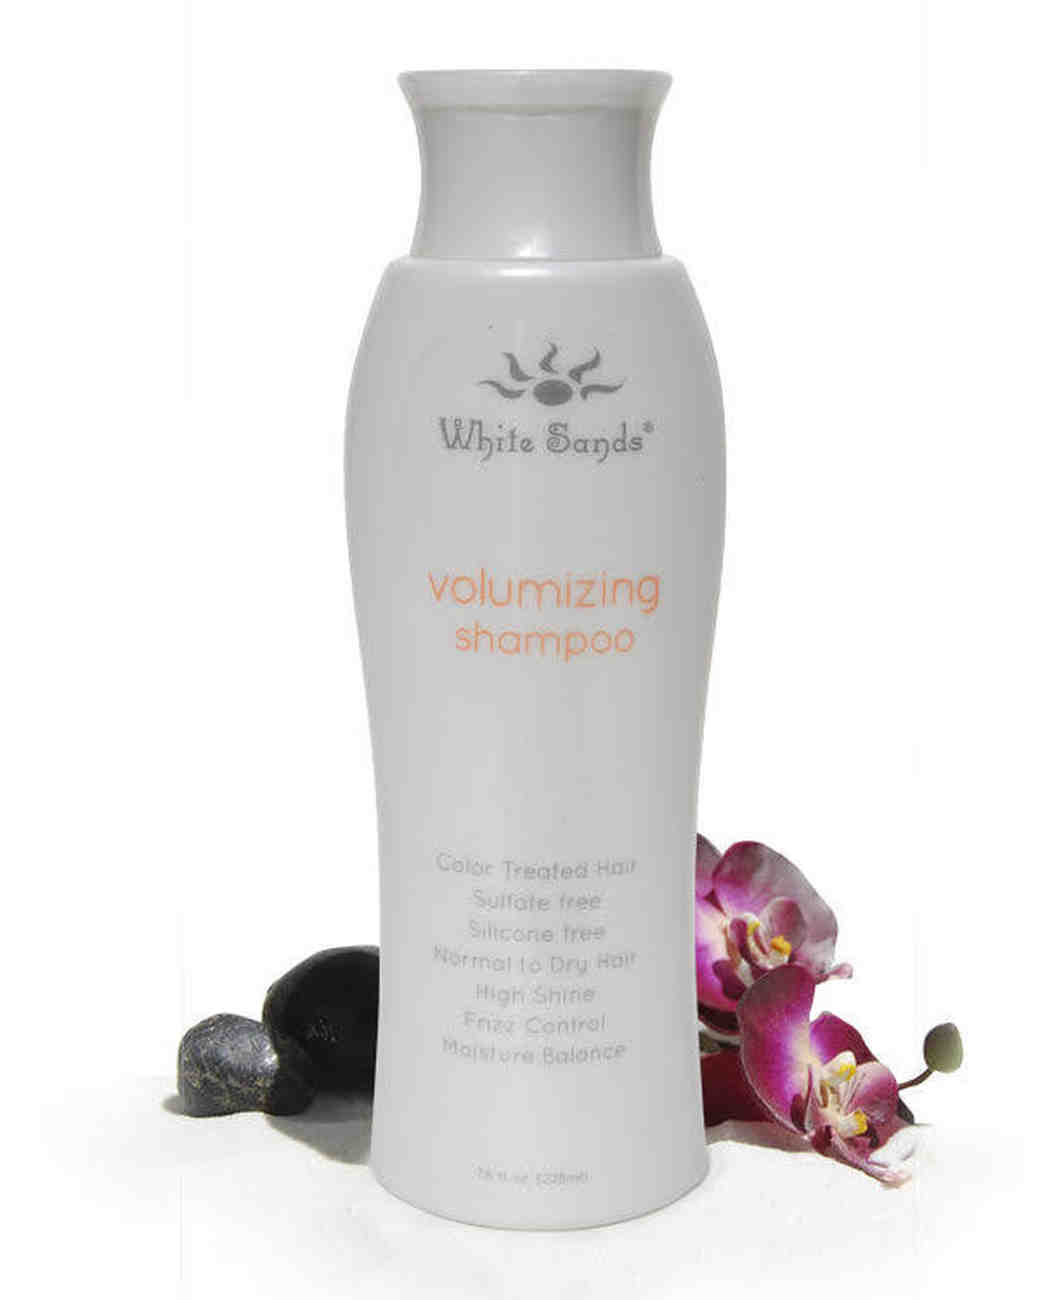 White Sands Volumizing Shampoo